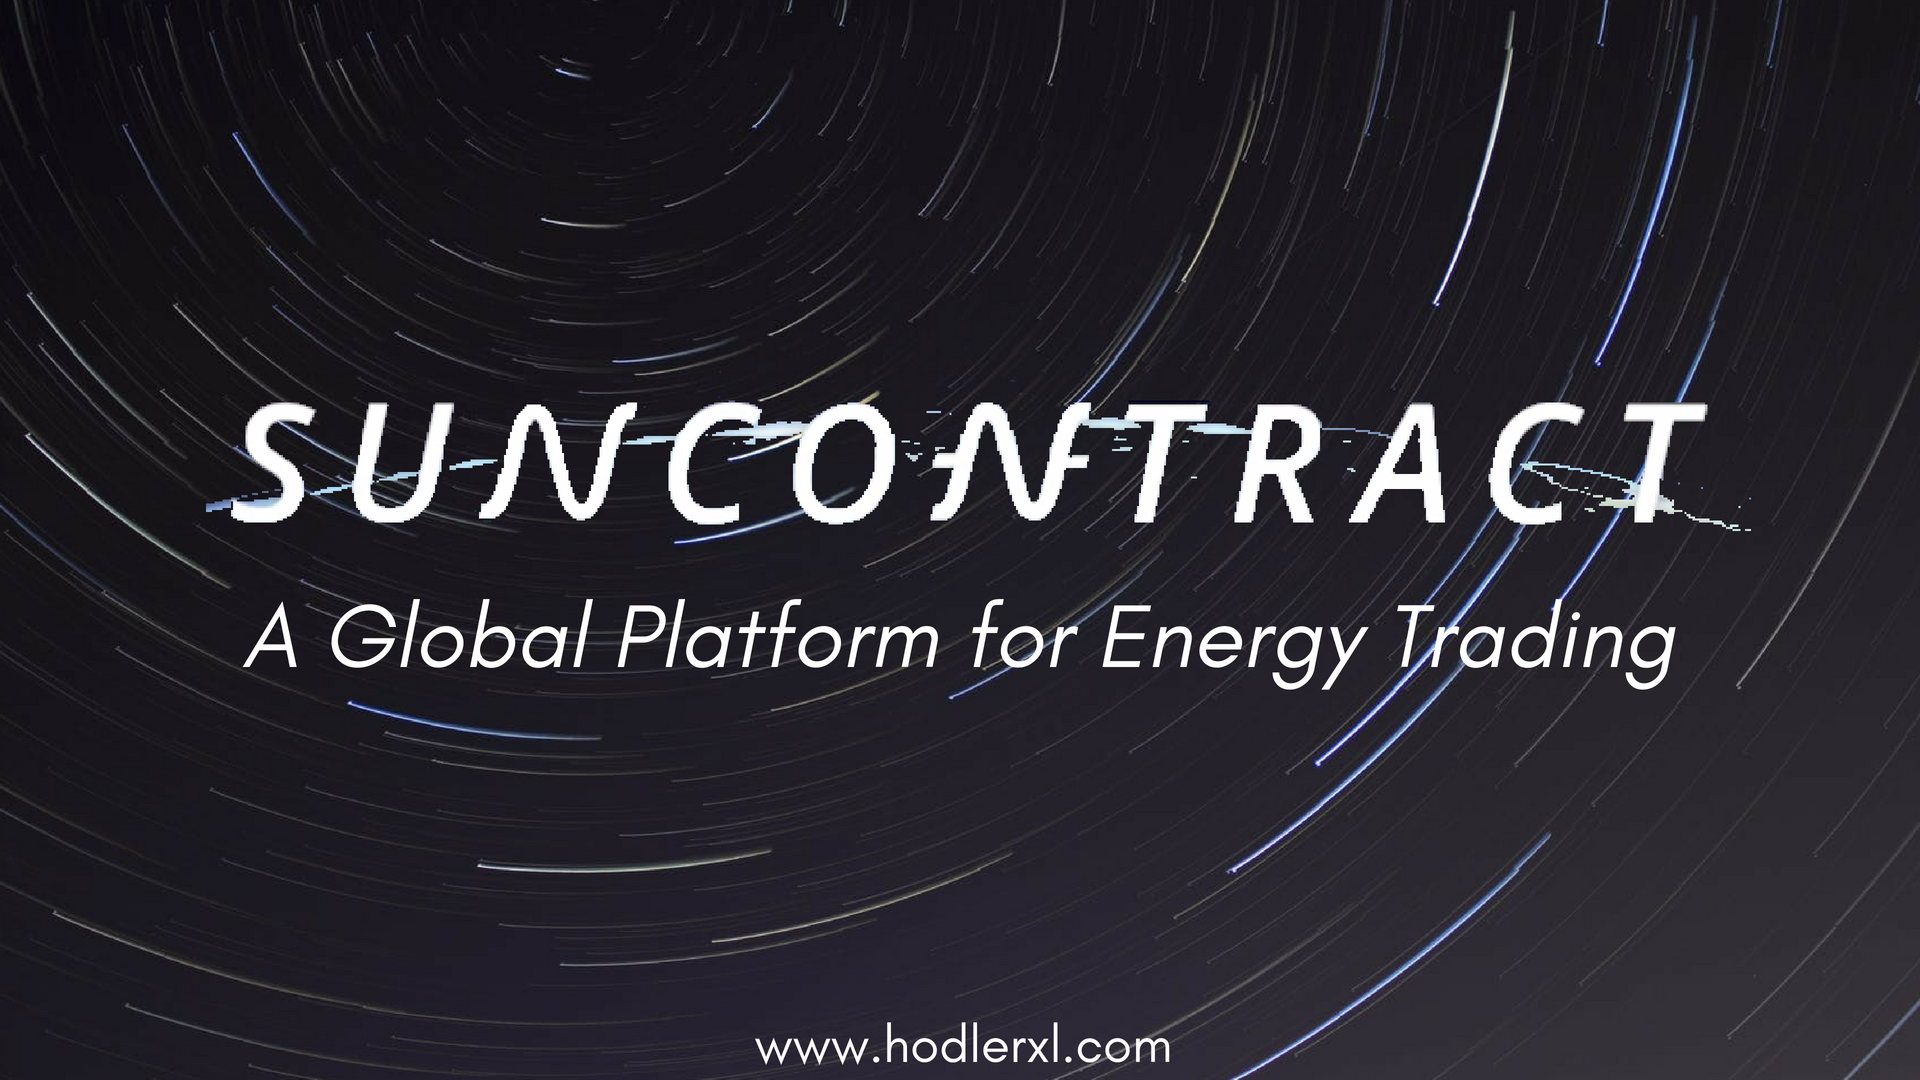 SunContract (SNC) - A Global Platform for Energy Trading